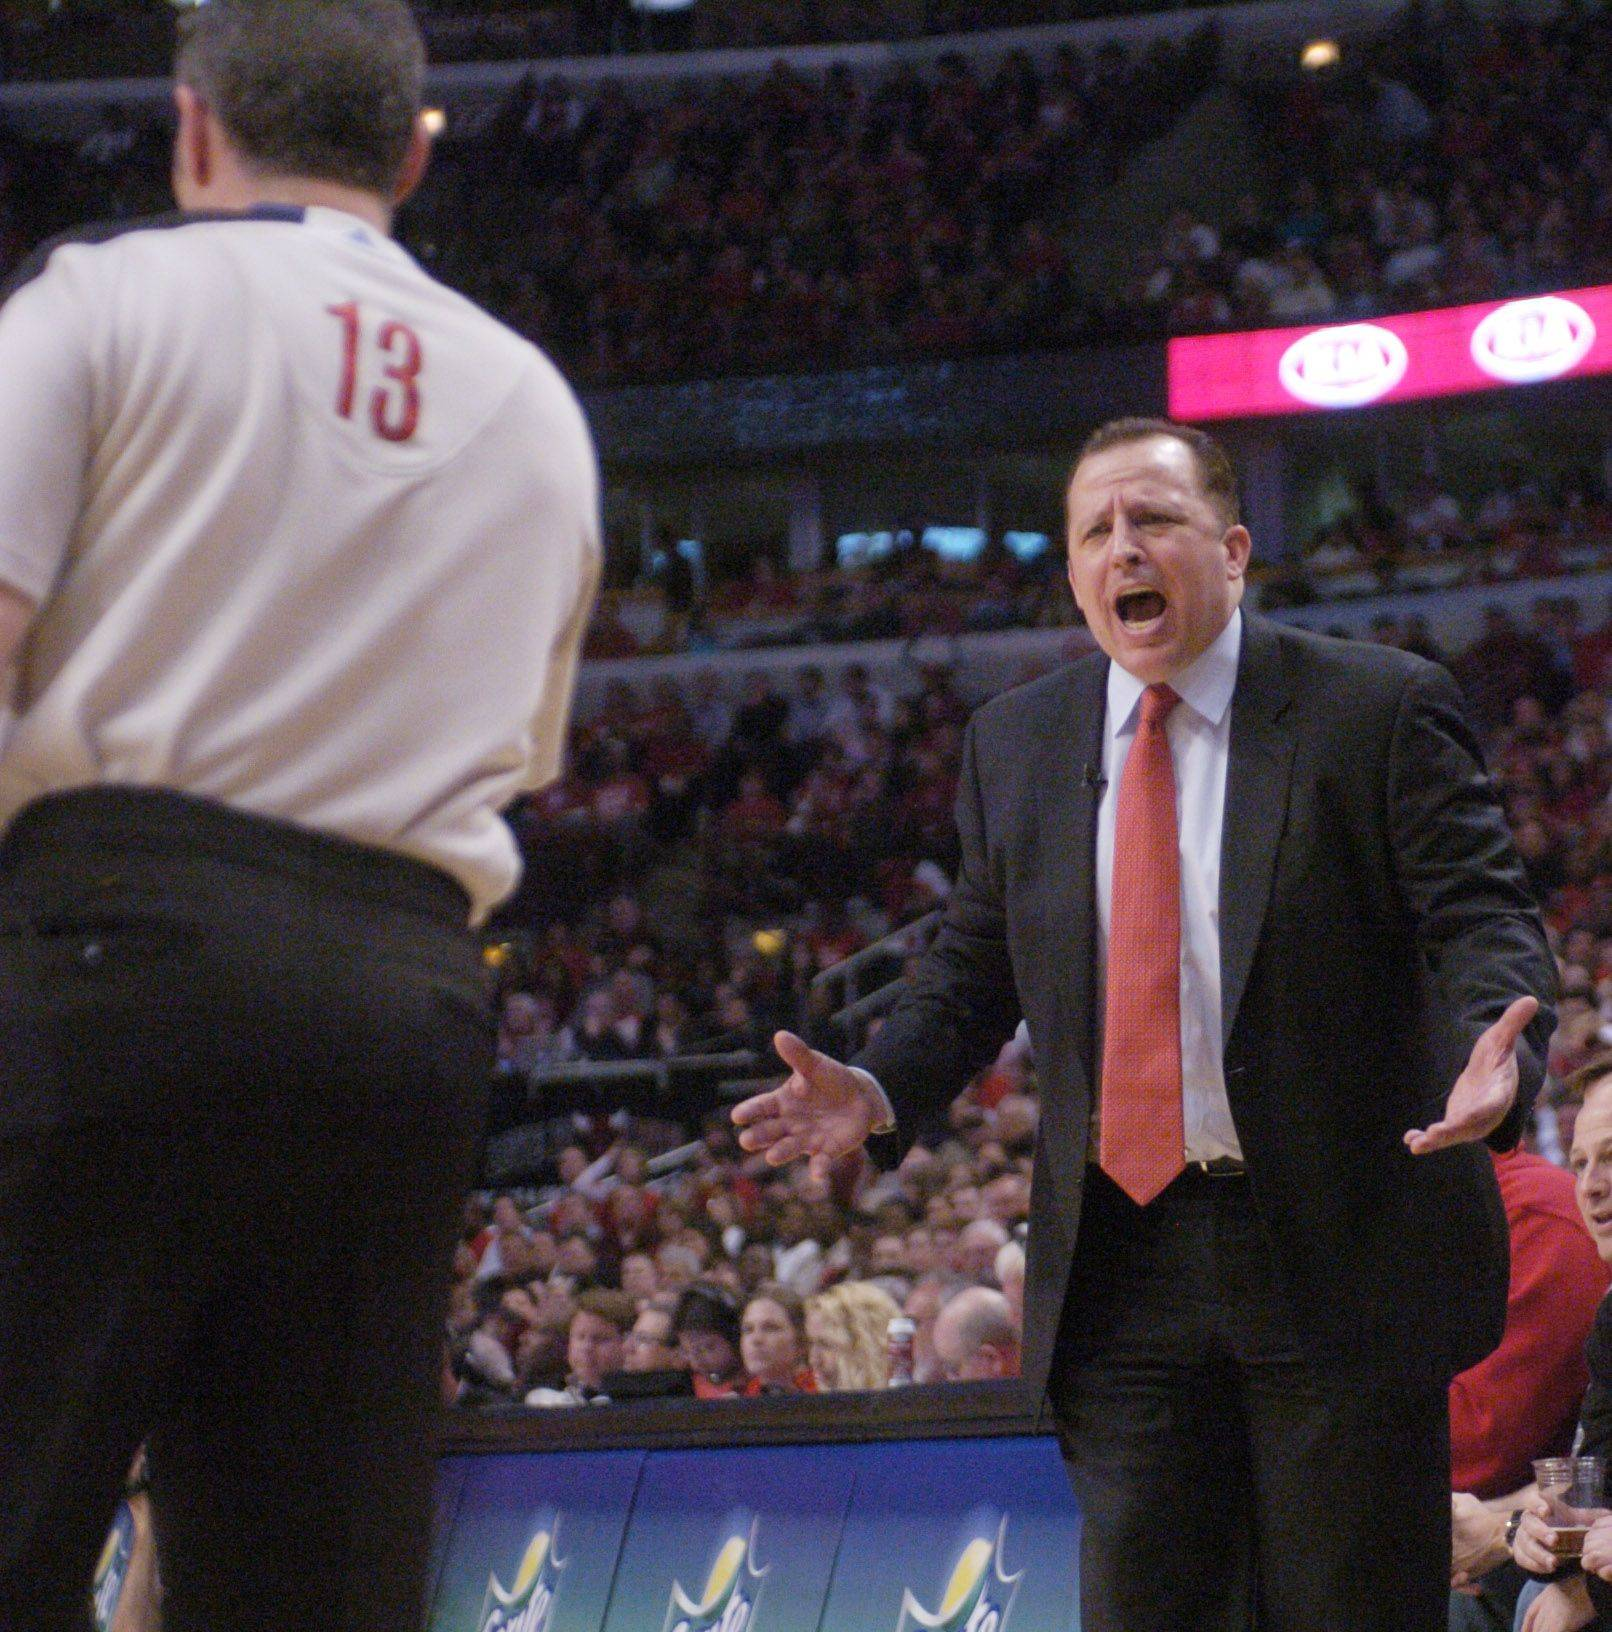 Bulls coach Tom Thibodeau draws a technical foul during Monday's game against the Atlanta Hawks.